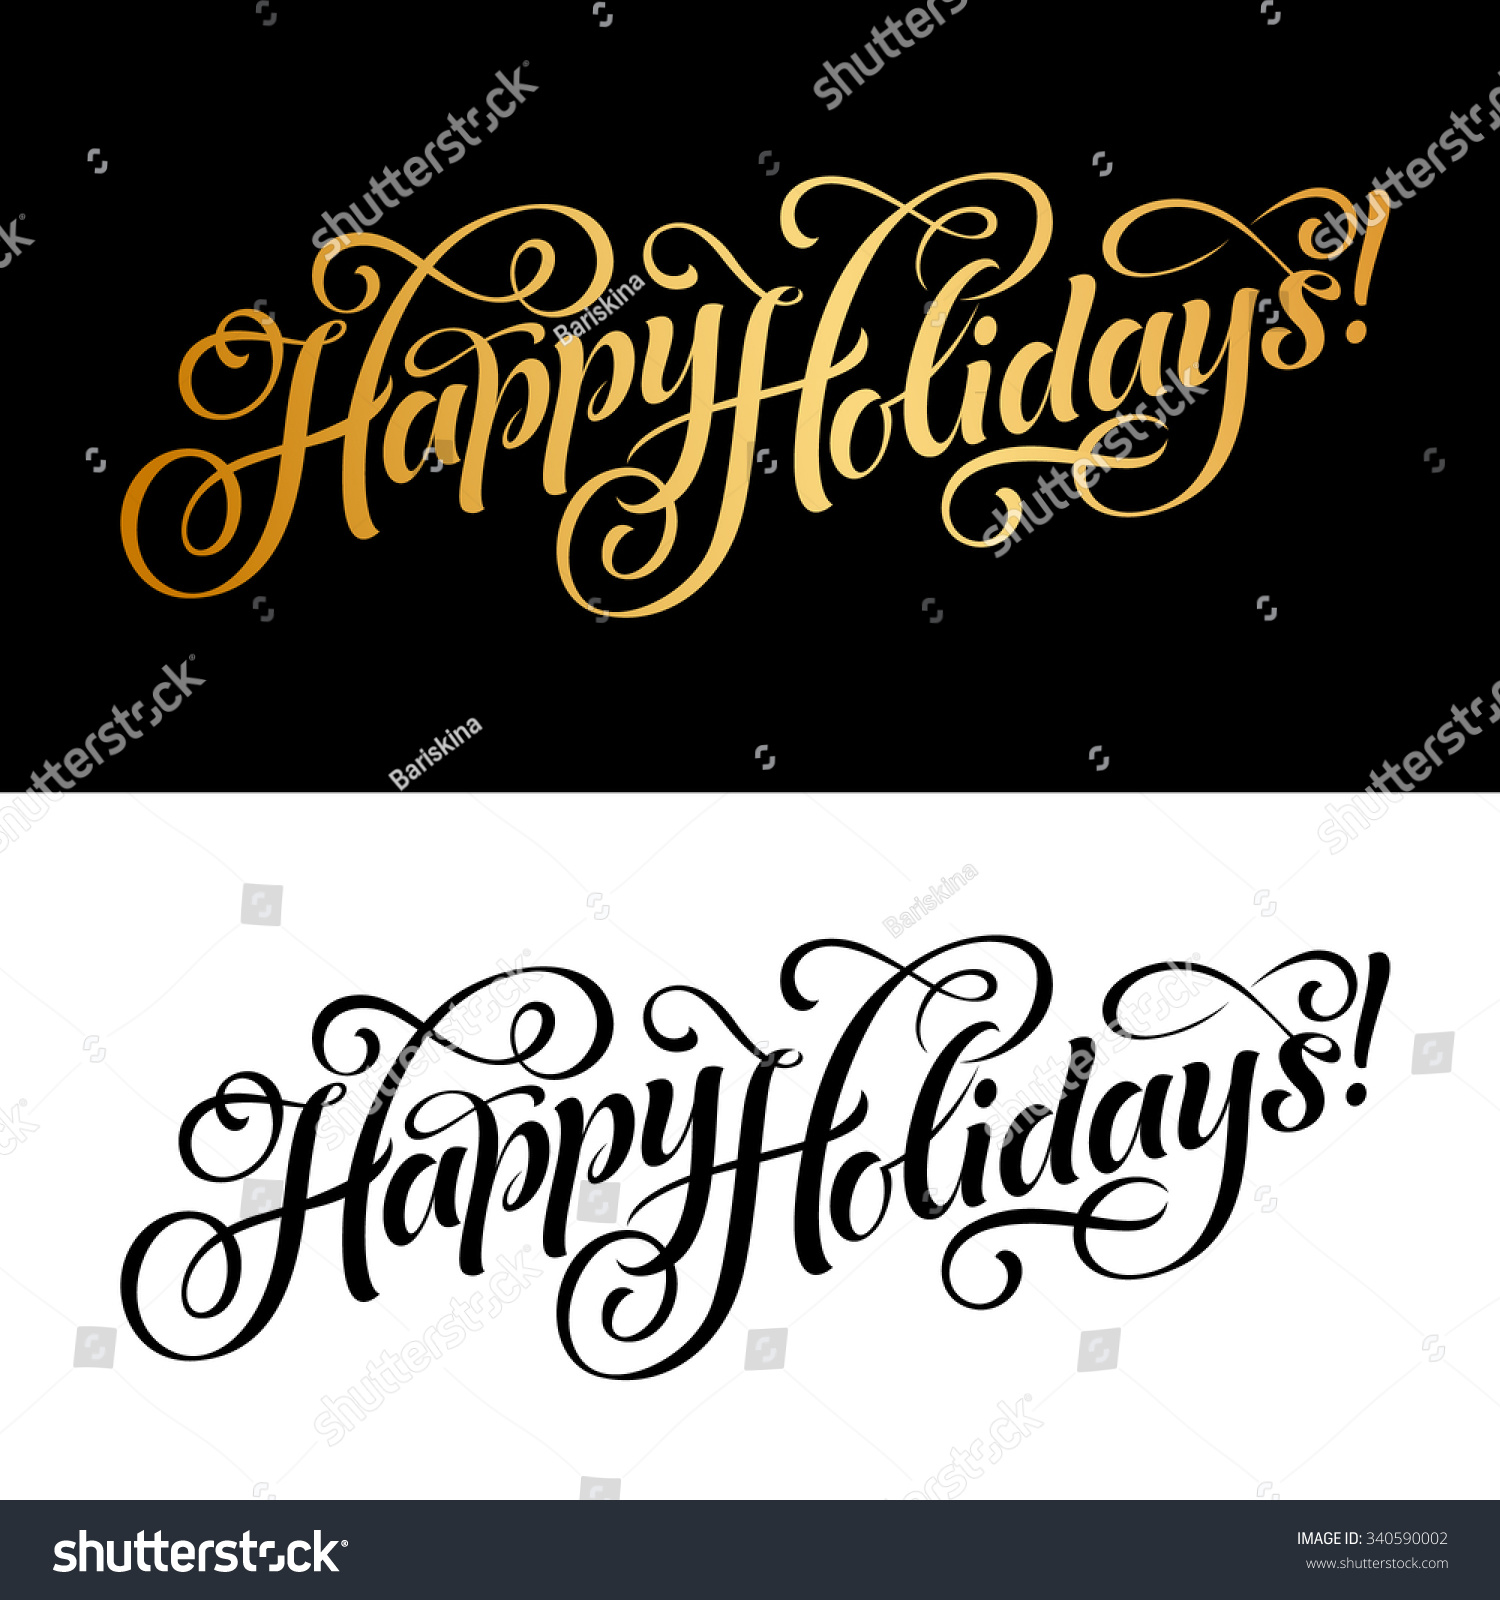 Vector illustration of paper cards with Happy Holidays lettering and ornamental elements Christmas calligraphy